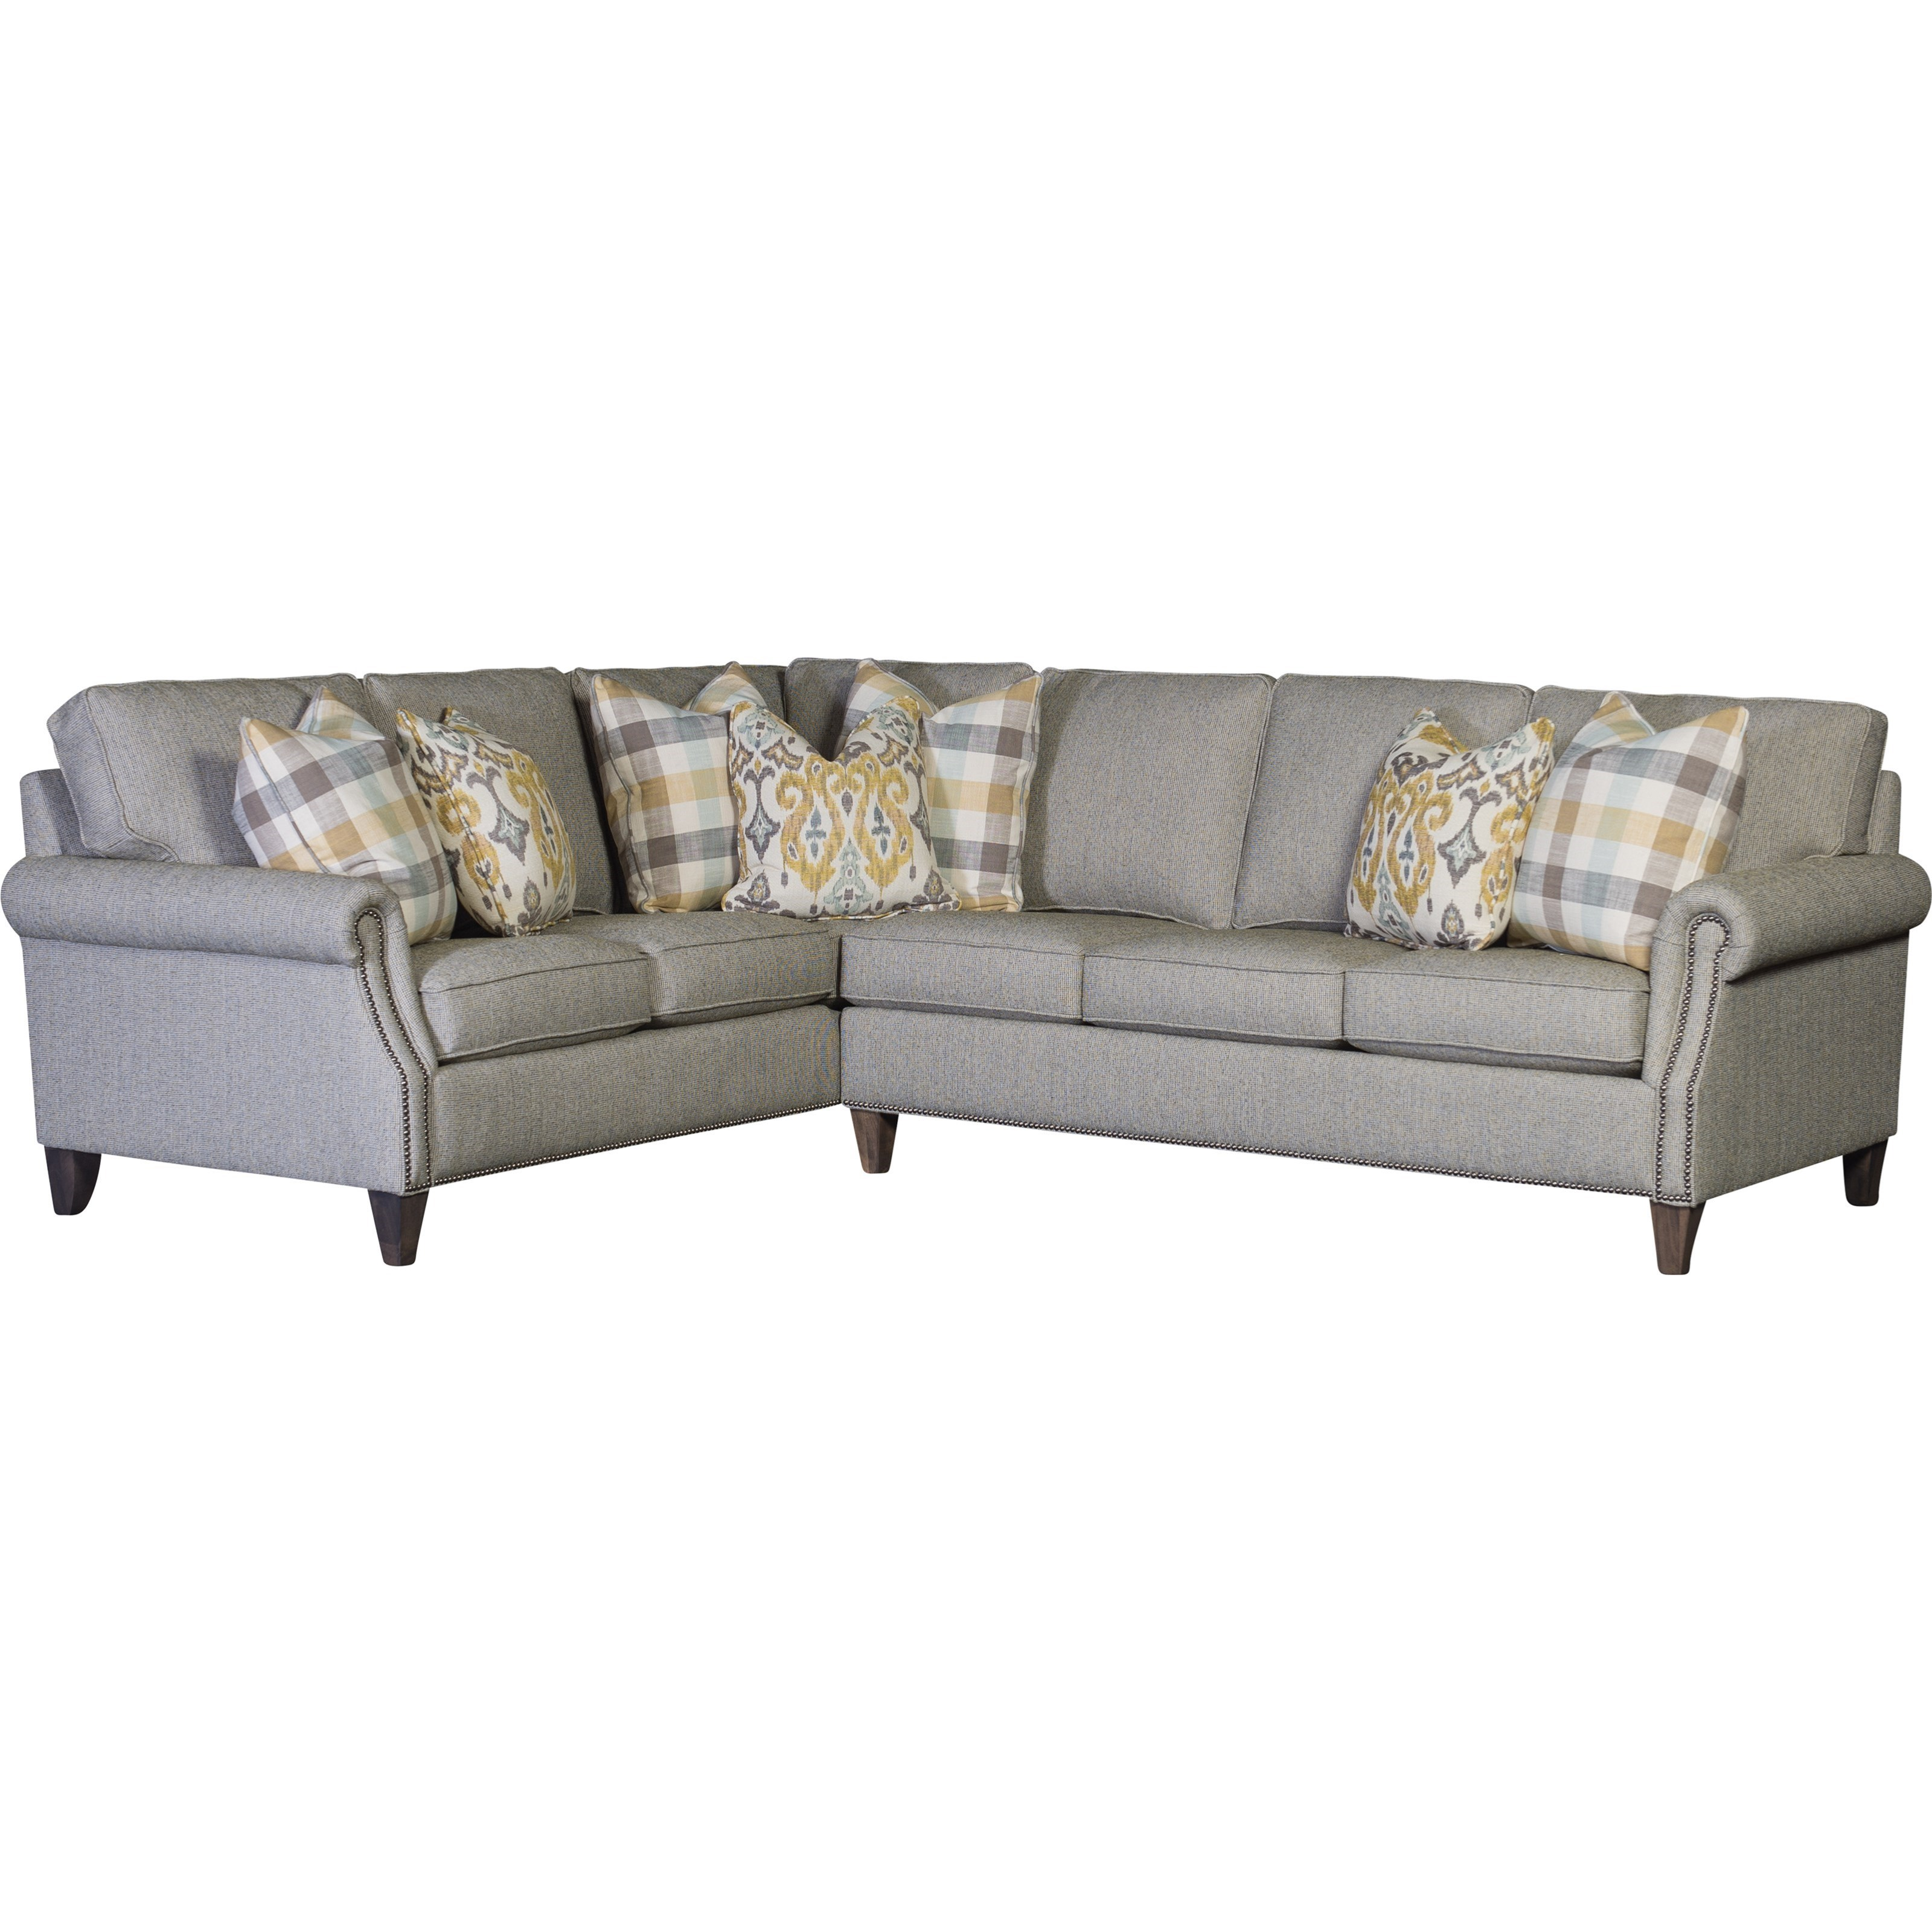 3311 5 Seat Sectional by Mayo at Wilcox Furniture